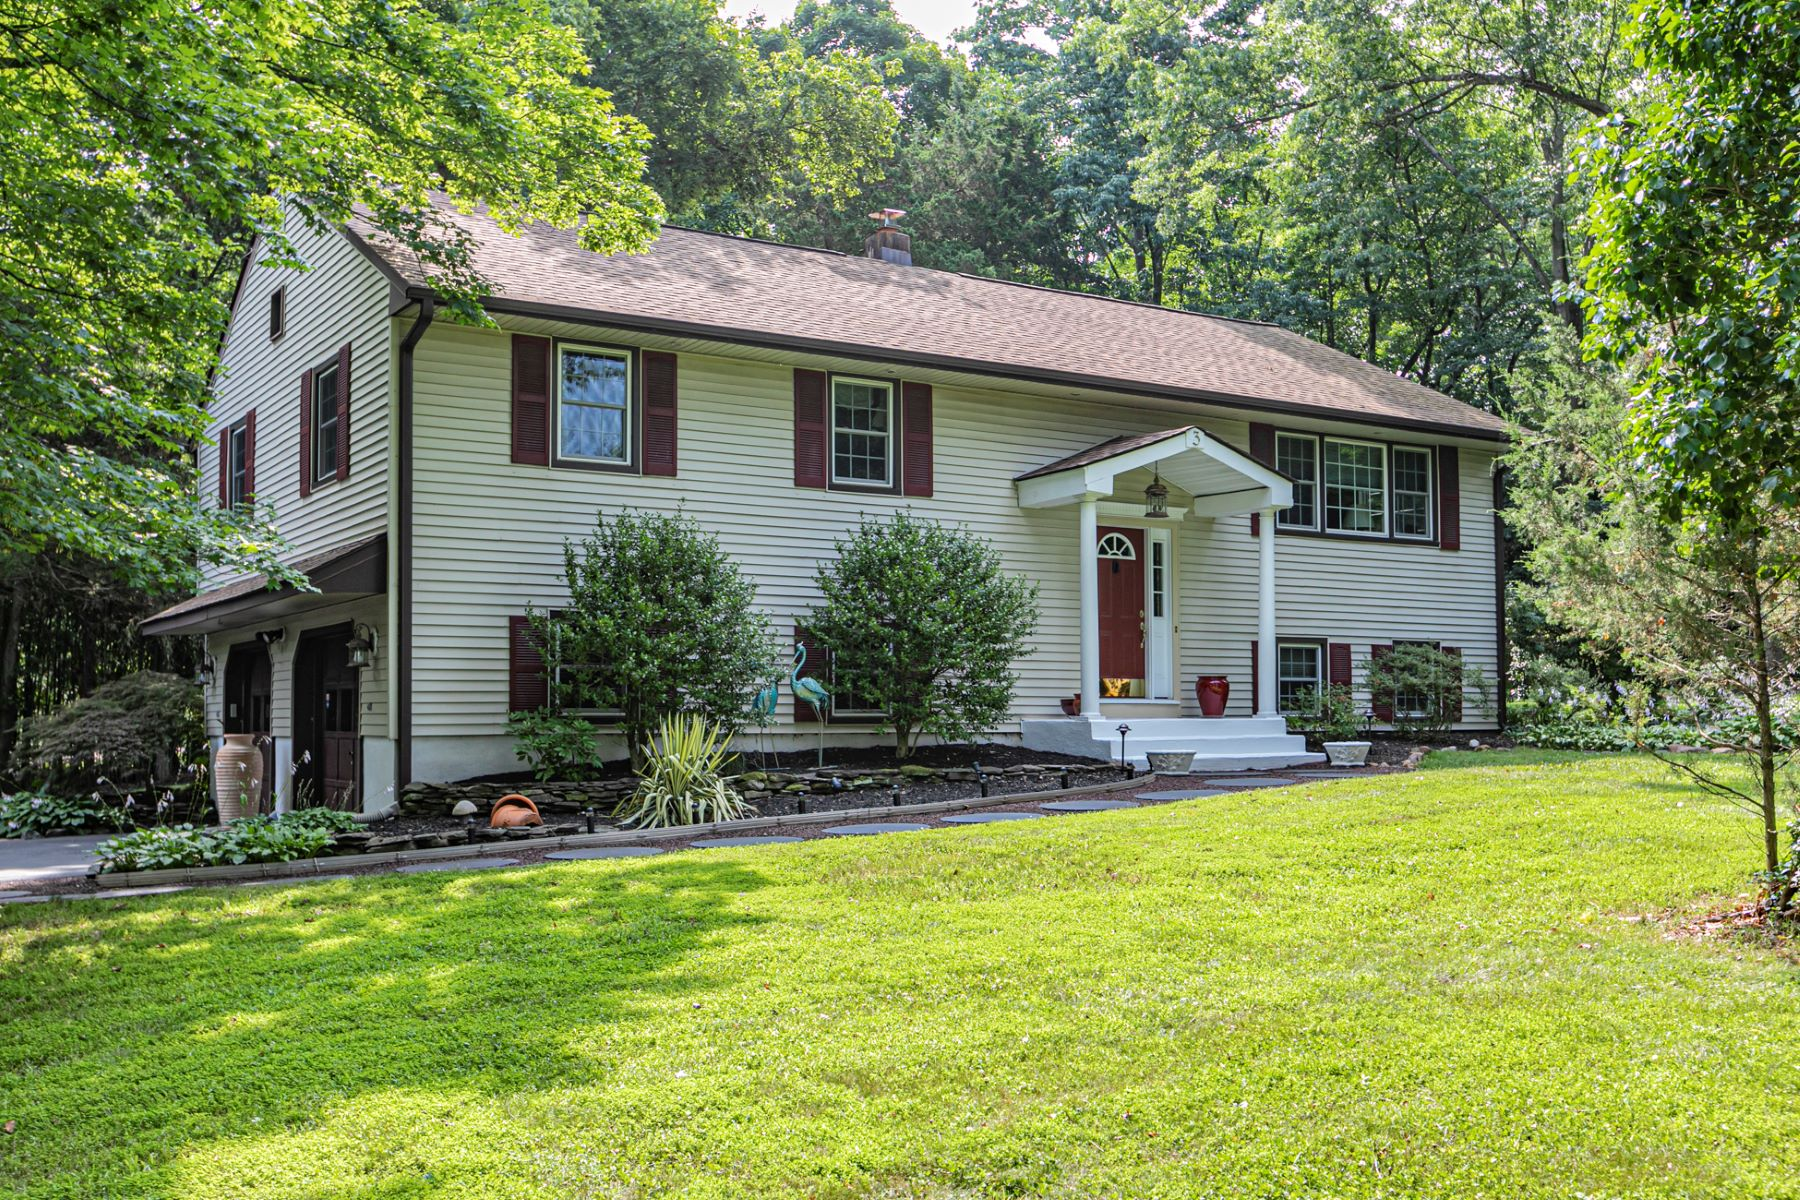 Single Family Homes for Sale at Natural Light Fills This Beautifully Updated Home 3 Sycamore Lane, Skillman, New Jersey 08558 United States